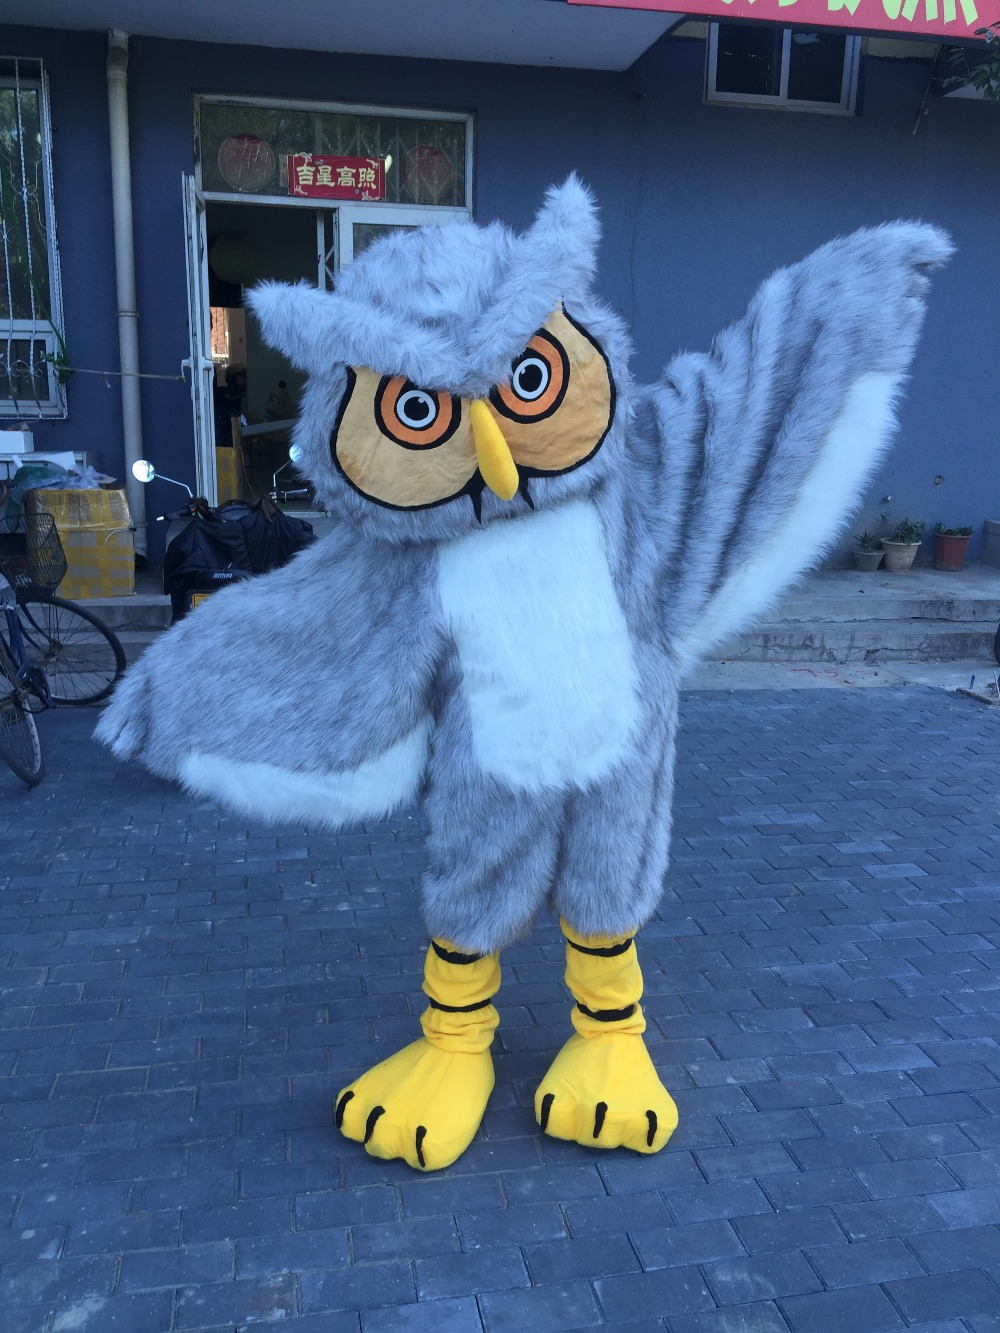 Details about  /Halloween Owl Mascot Costume Suits Cosplay Party Game Dress Adult Character 2020